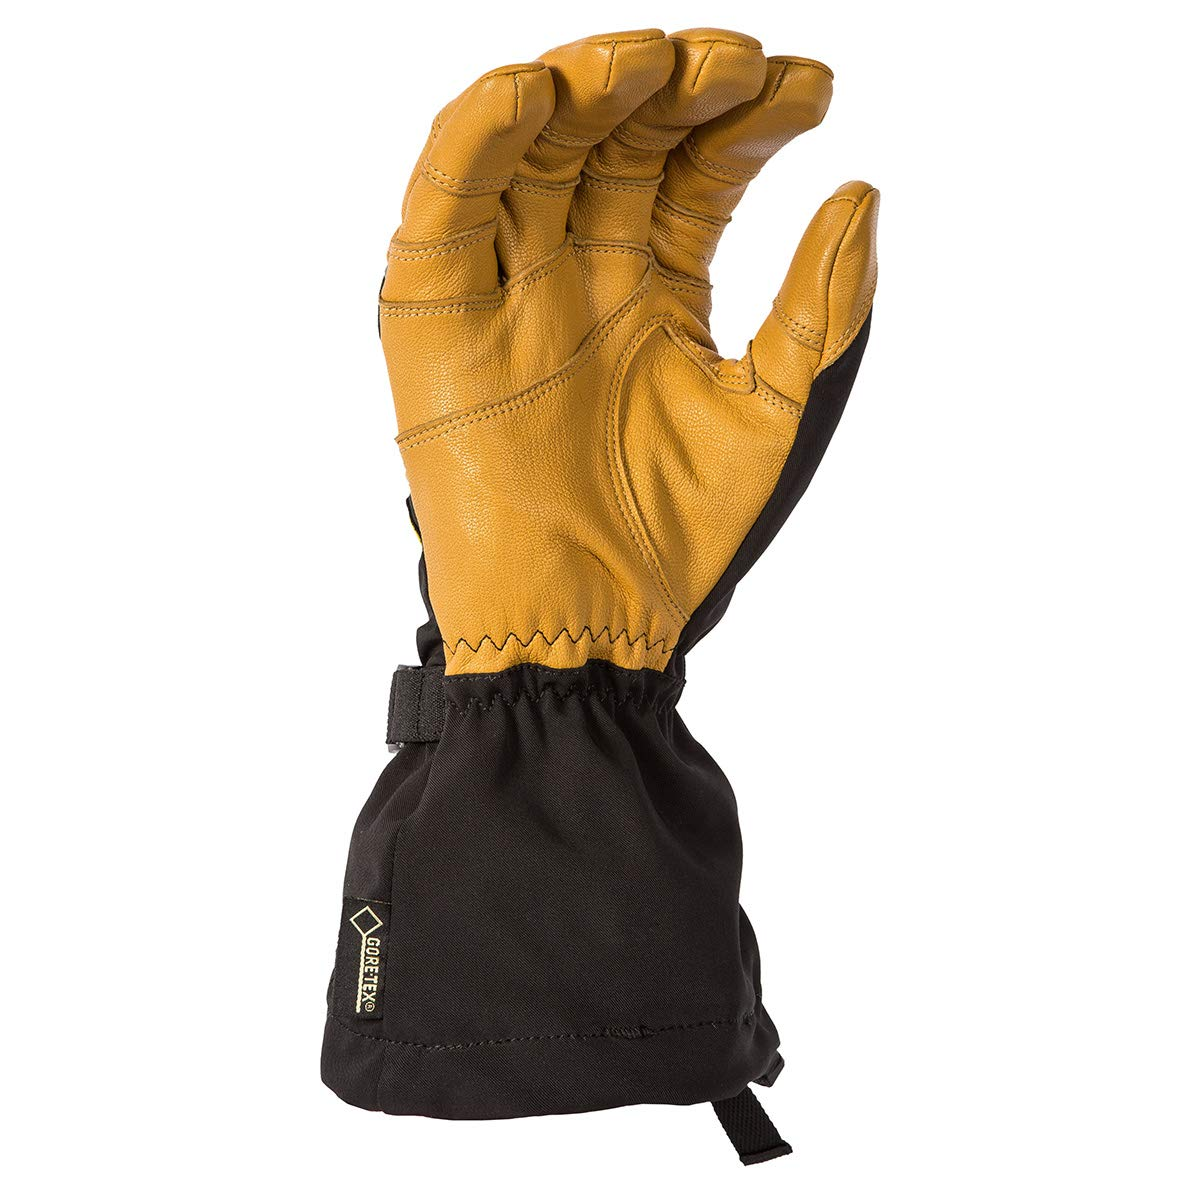 KLIM Summit Glove XL Black 3088-001-150-000 - lccs org sg